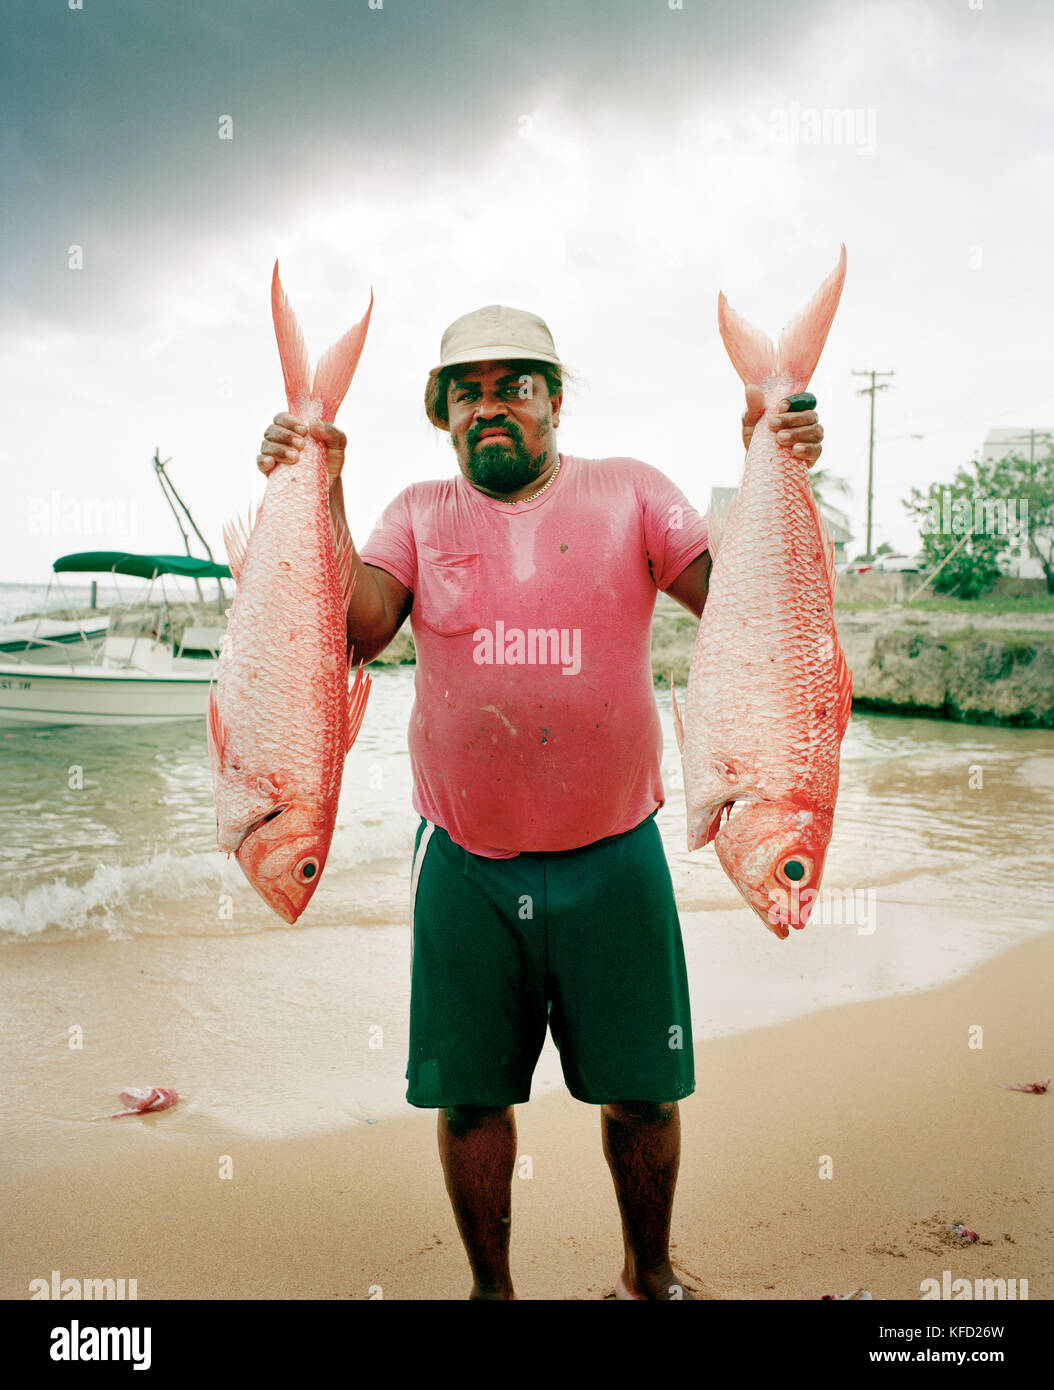 CAYMAN ISLANDS, Grand Cayman, fisherman holding two red snapper caught in the Caribbean Sea - Stock Image